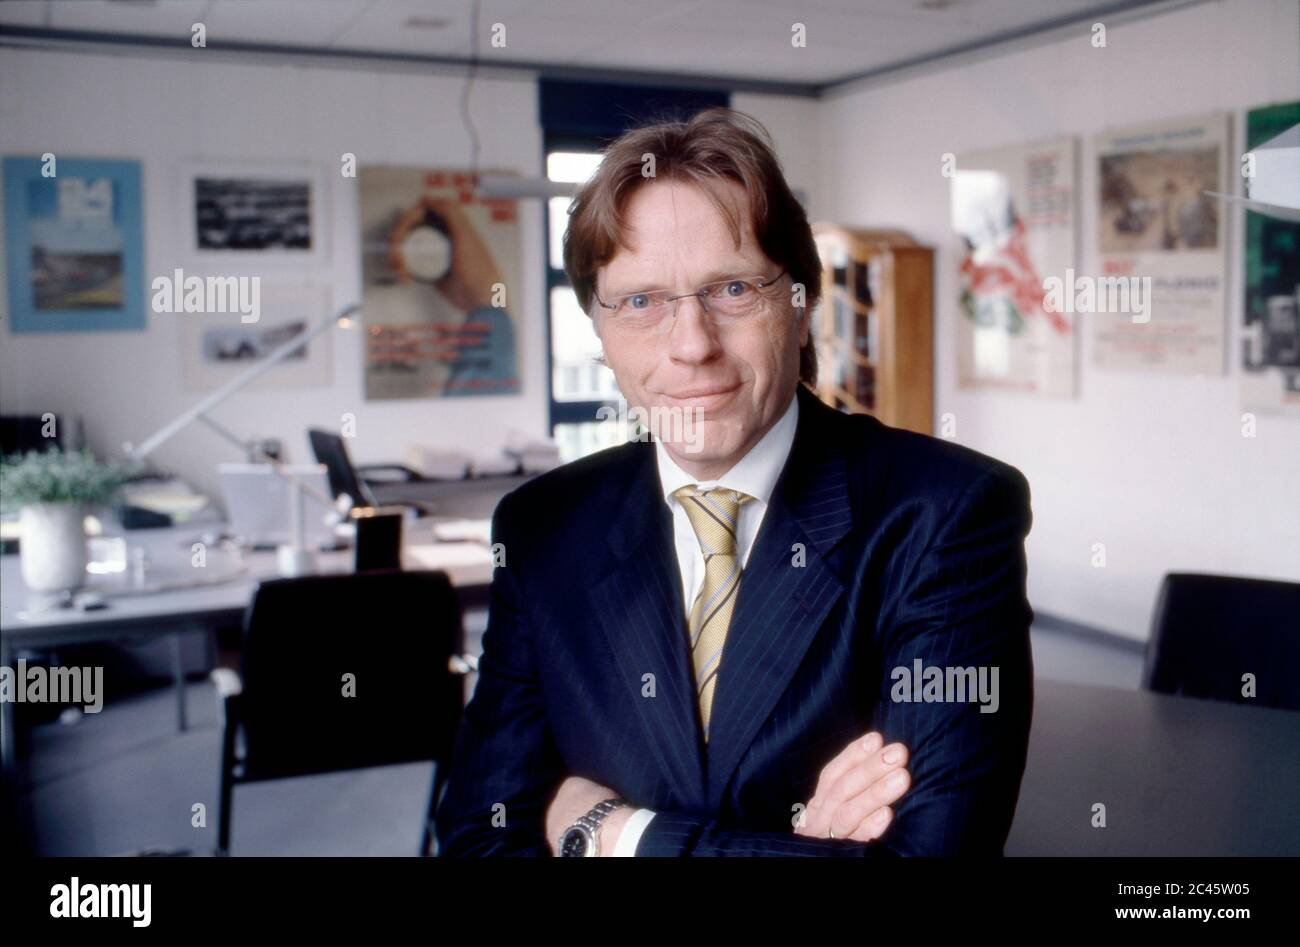 Klaus Dieter Frers - CEO of Paragon AG Stock Photo